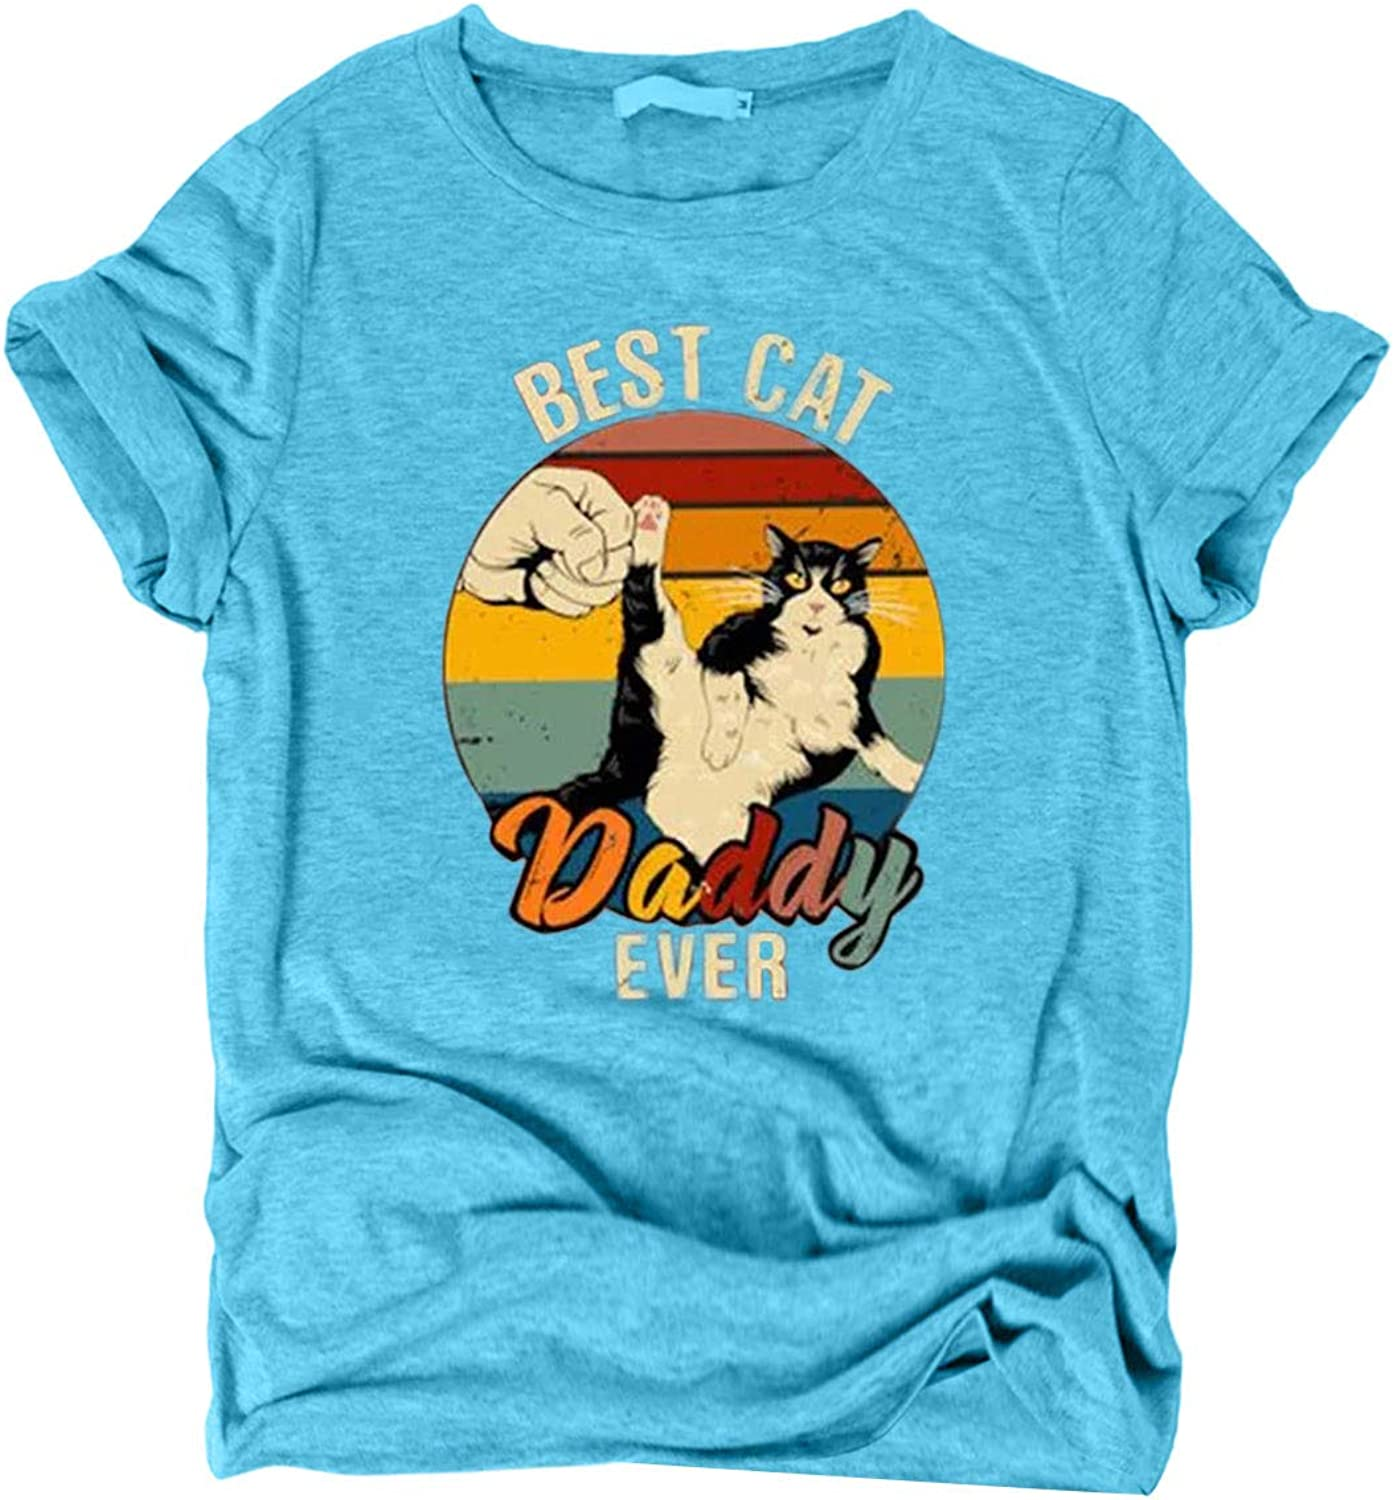 Best Cat Daddy Ever T-Shirt Women Letter Print Cat Fist Graphic